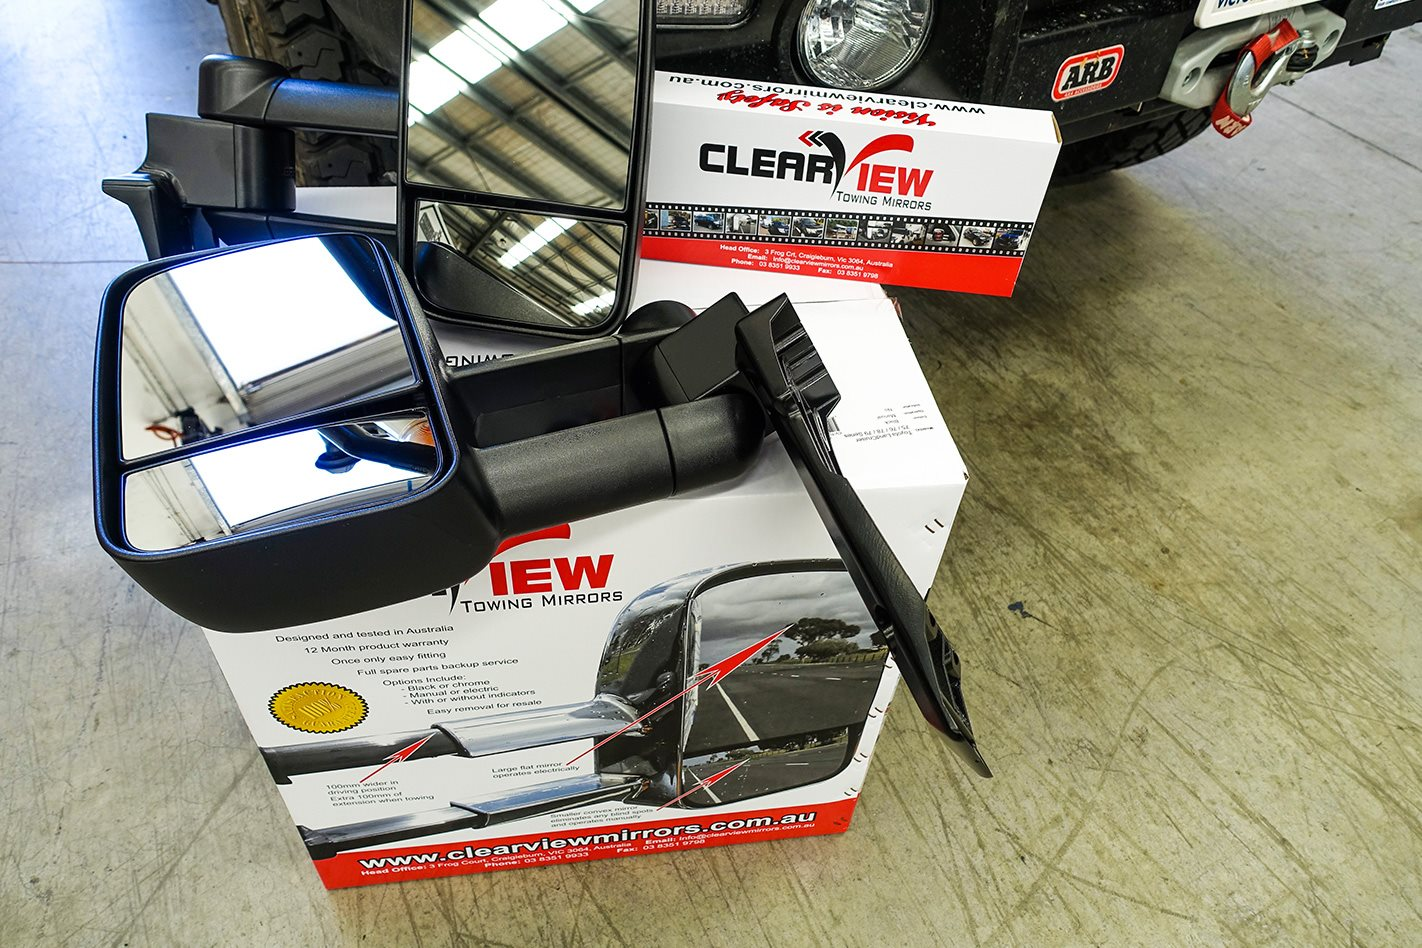 Clearview Mirror full kit